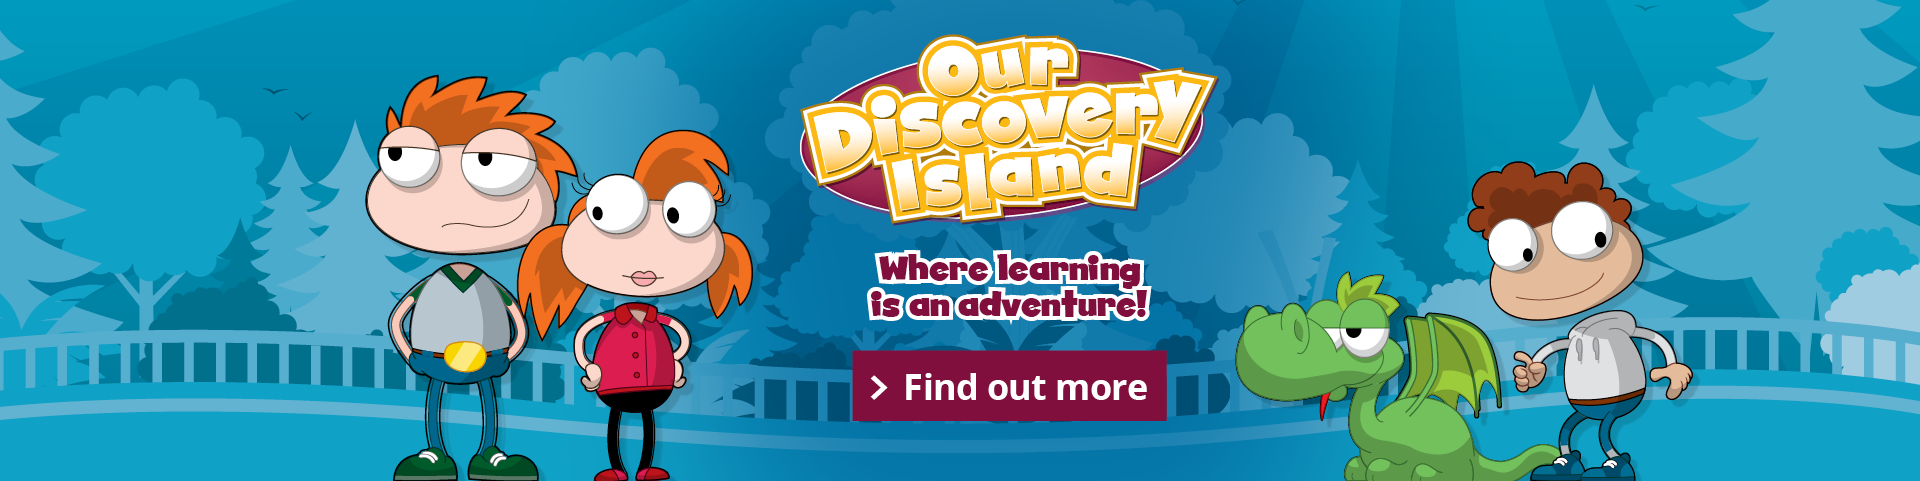 our discovery island banner